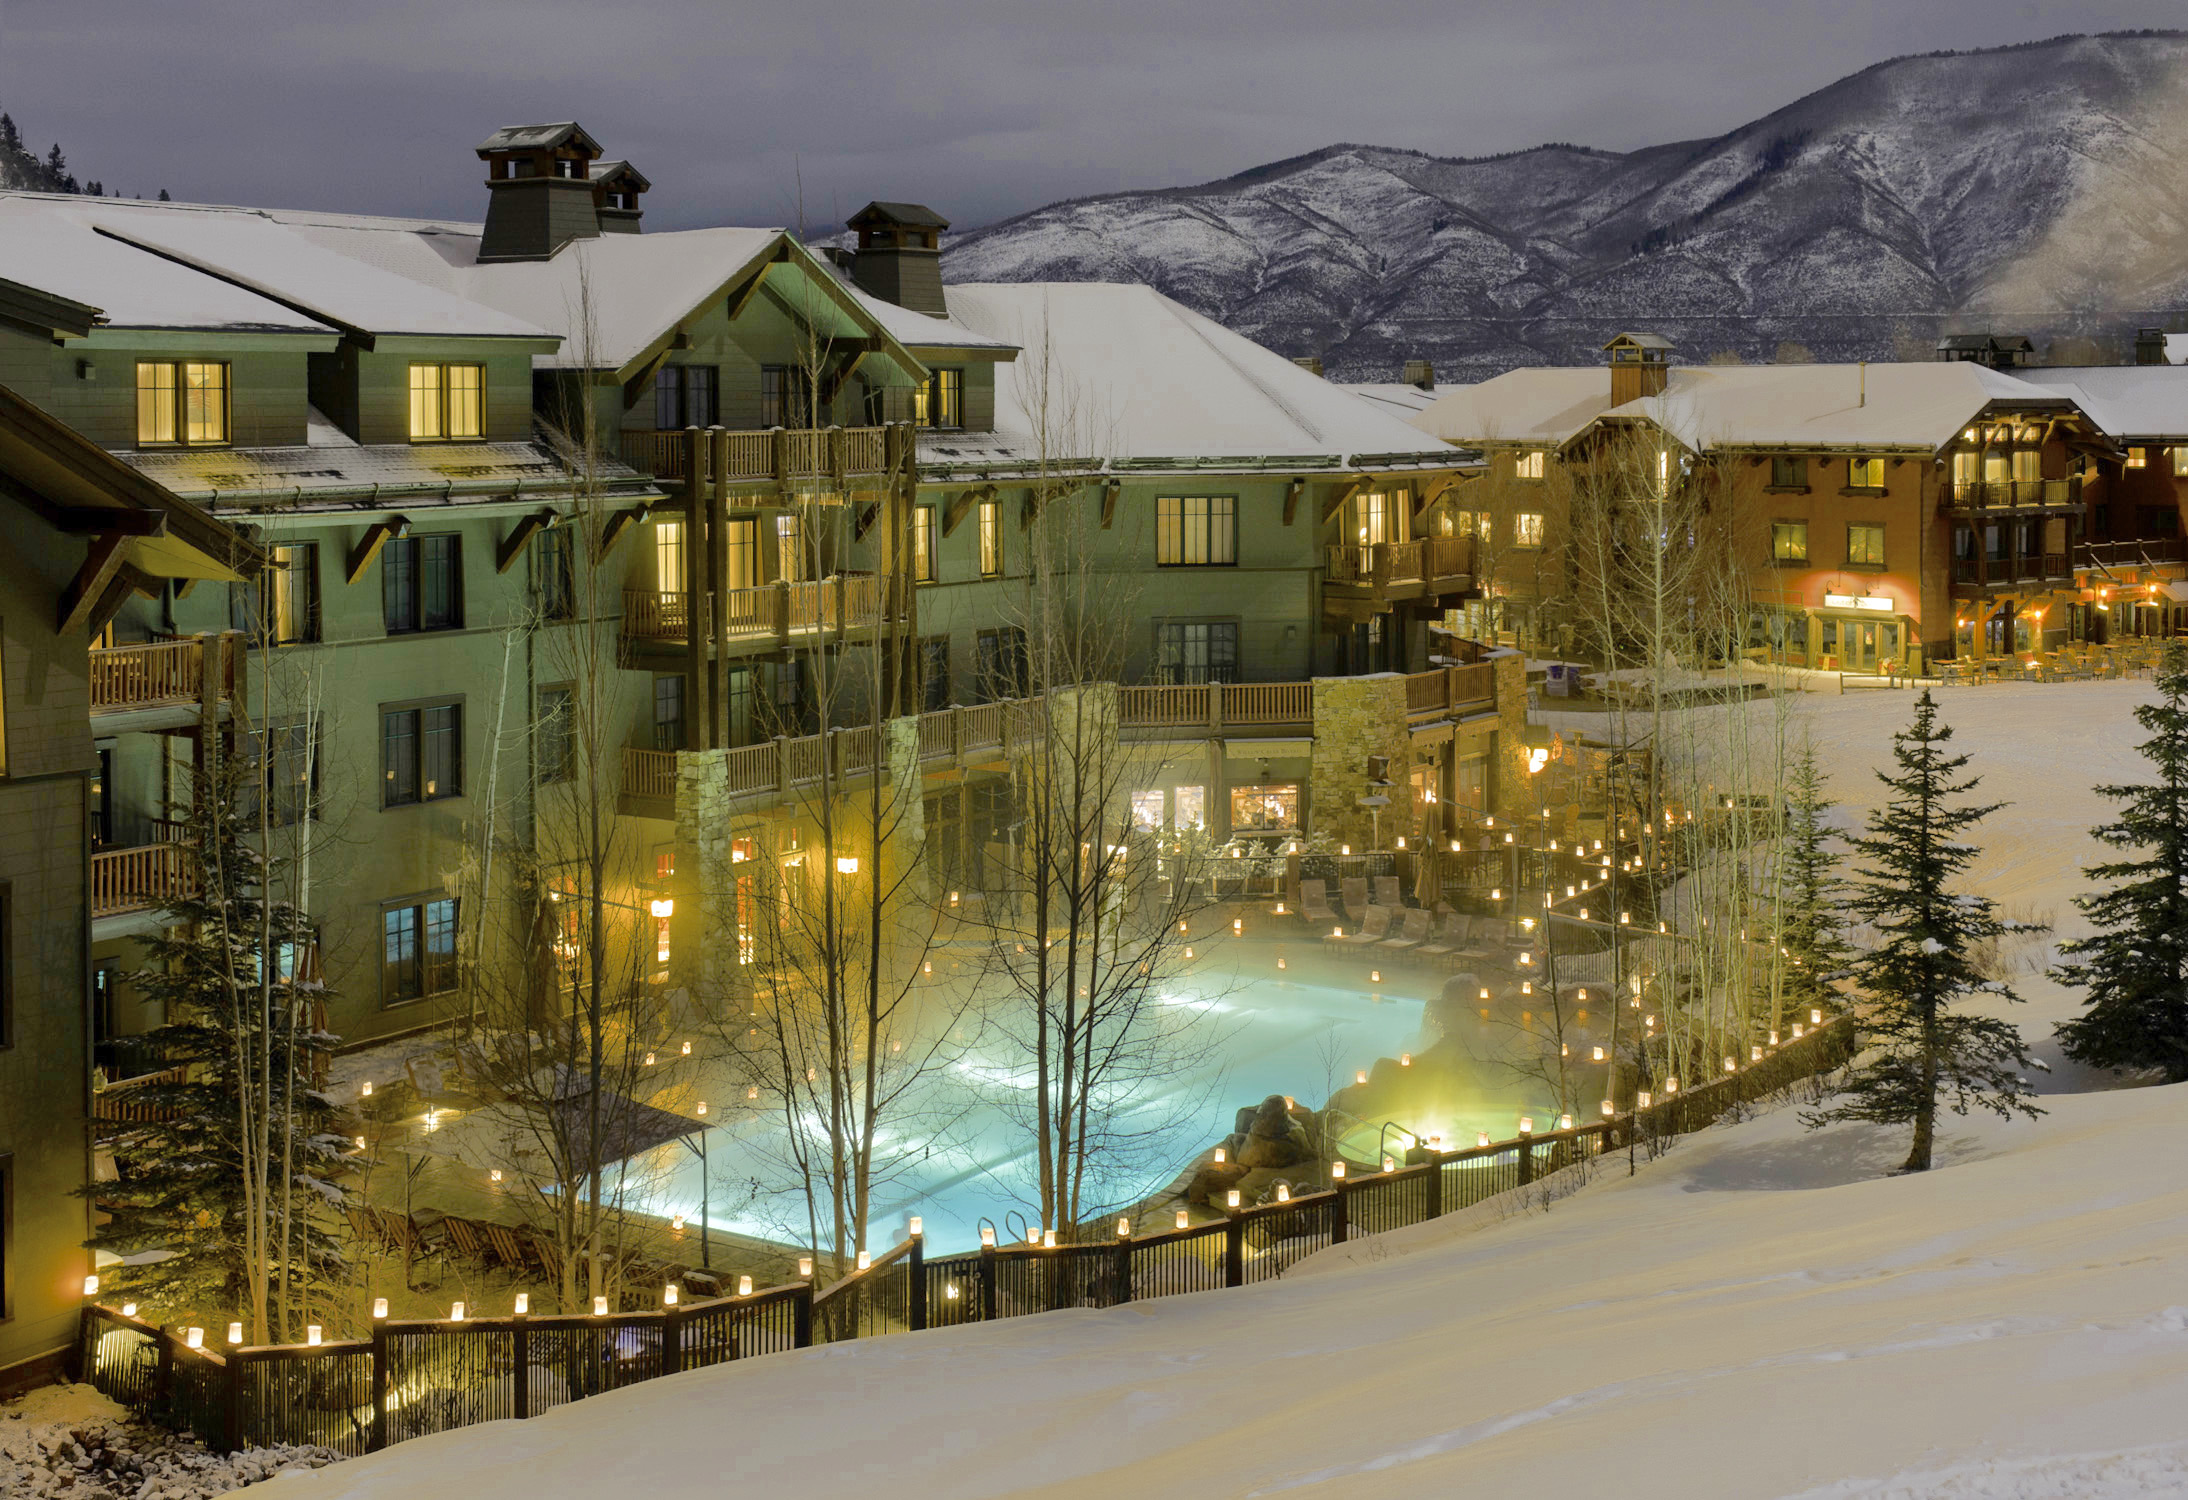 Fractional Ownership for Sale at Ritz-Carlton Club Fractional Condo Interest 0075 Prospector Road, 8404, Winter Interest 8, Ritz-Carlton Club Aspen, Colorado, 81611 United States